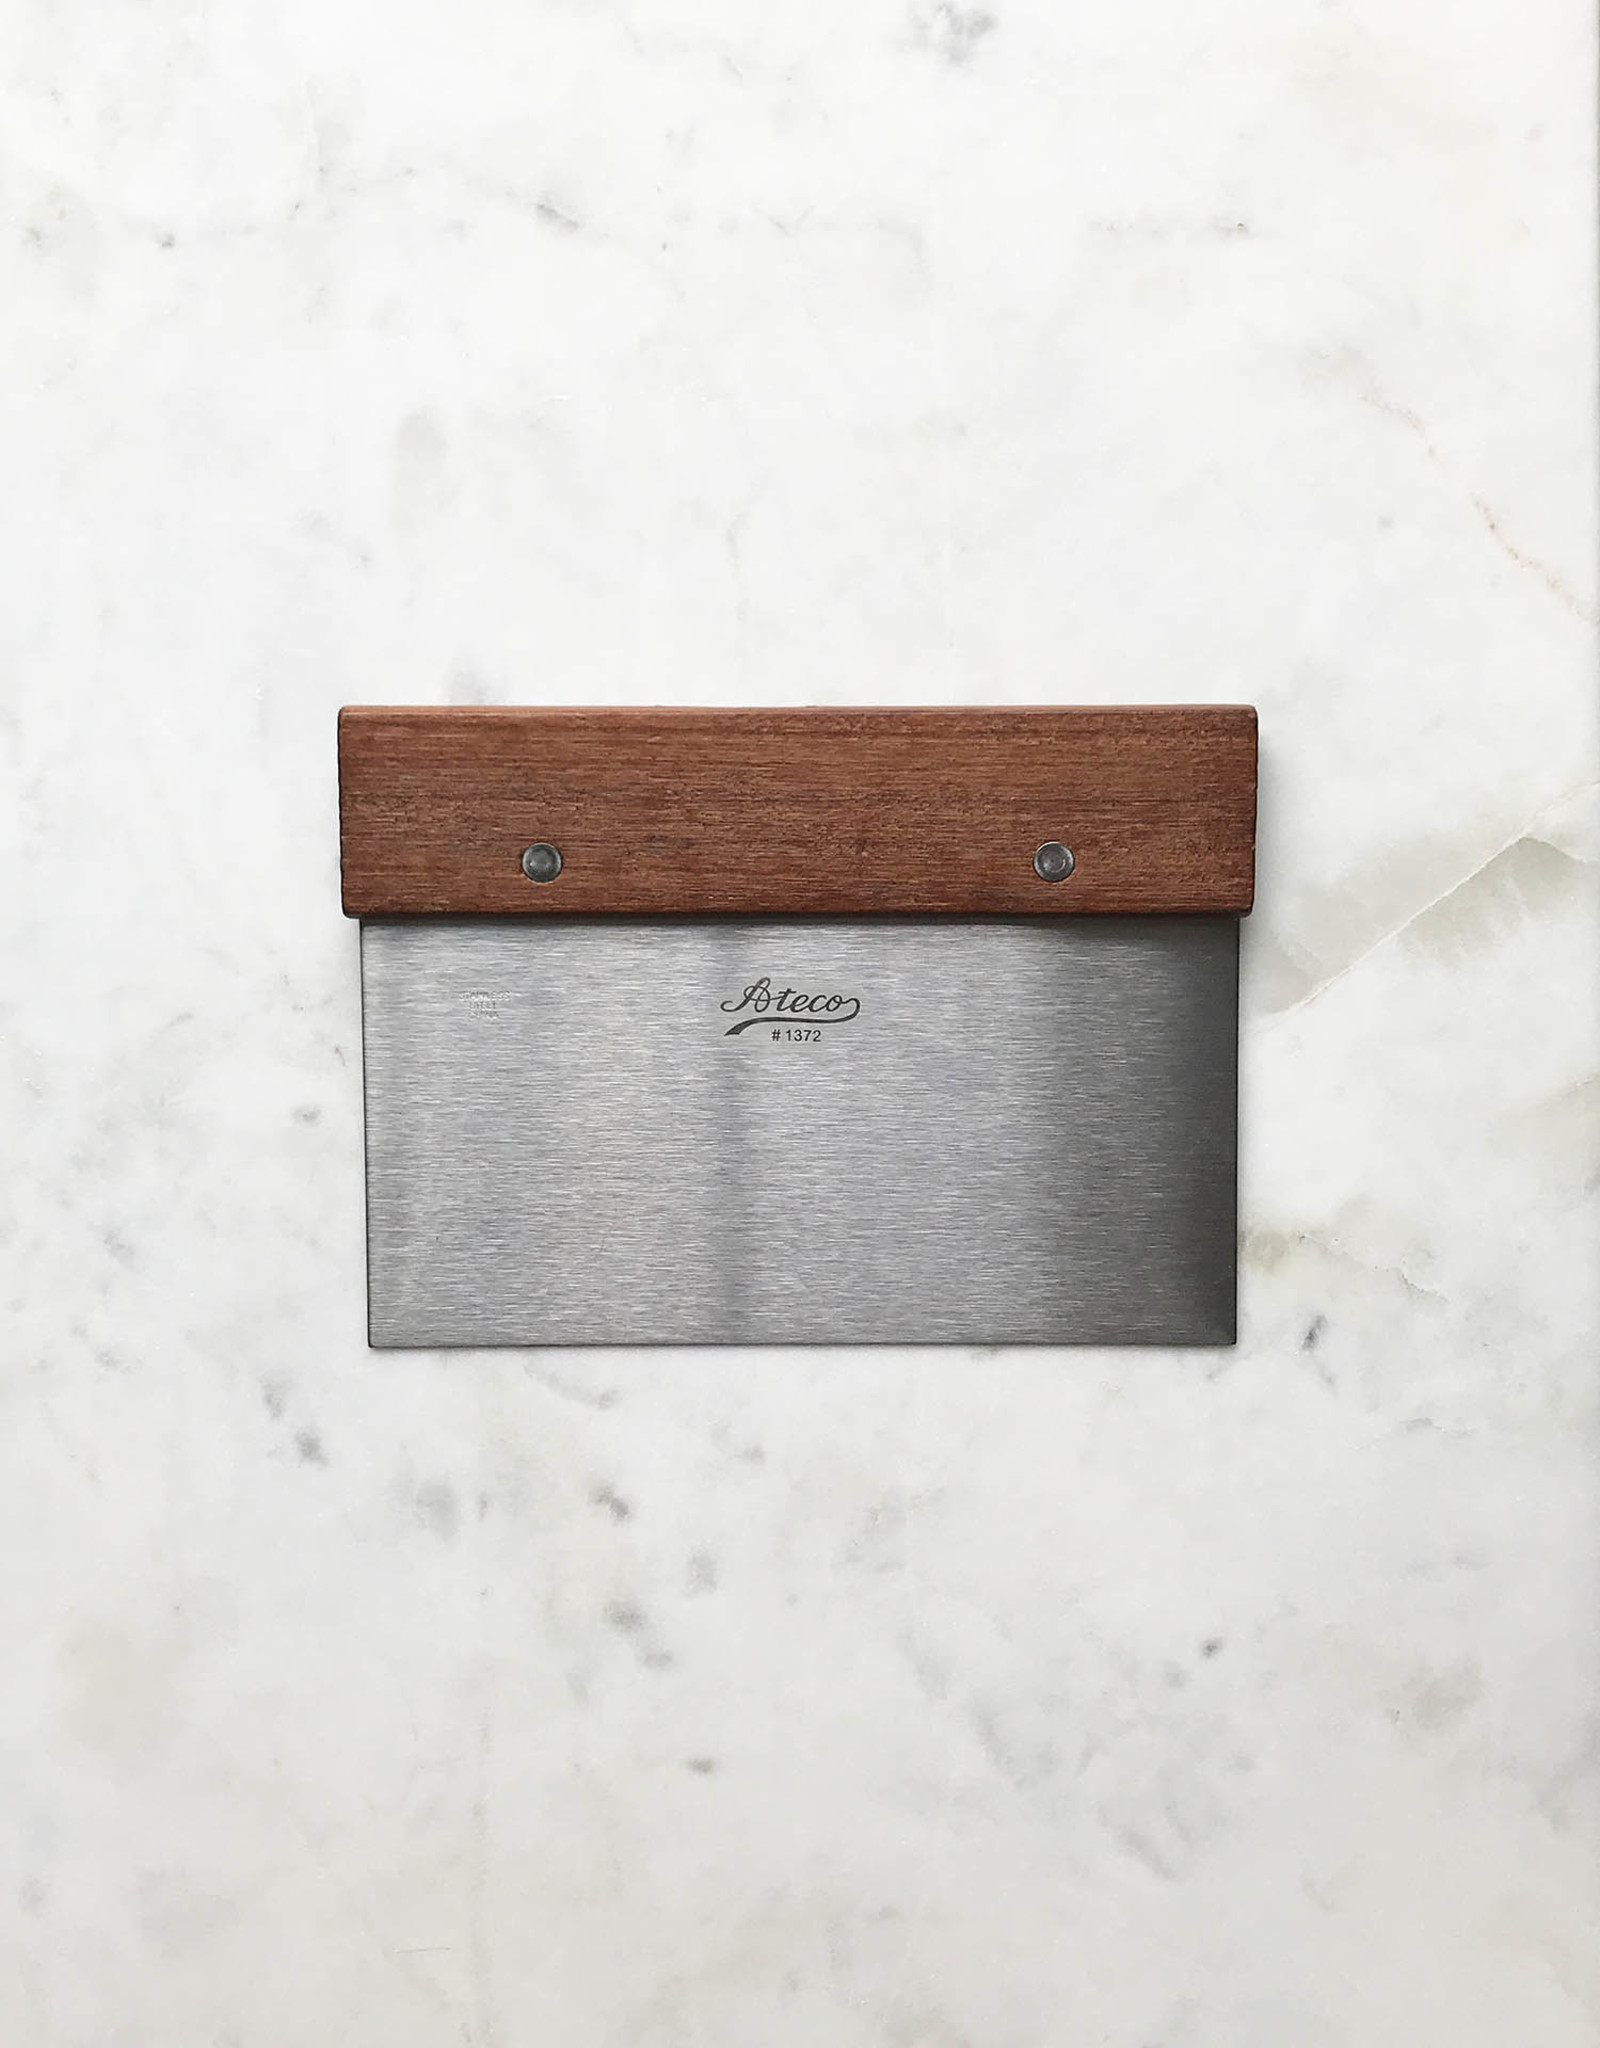 Ateco Ateco Wood & Stainless Bench Scraper